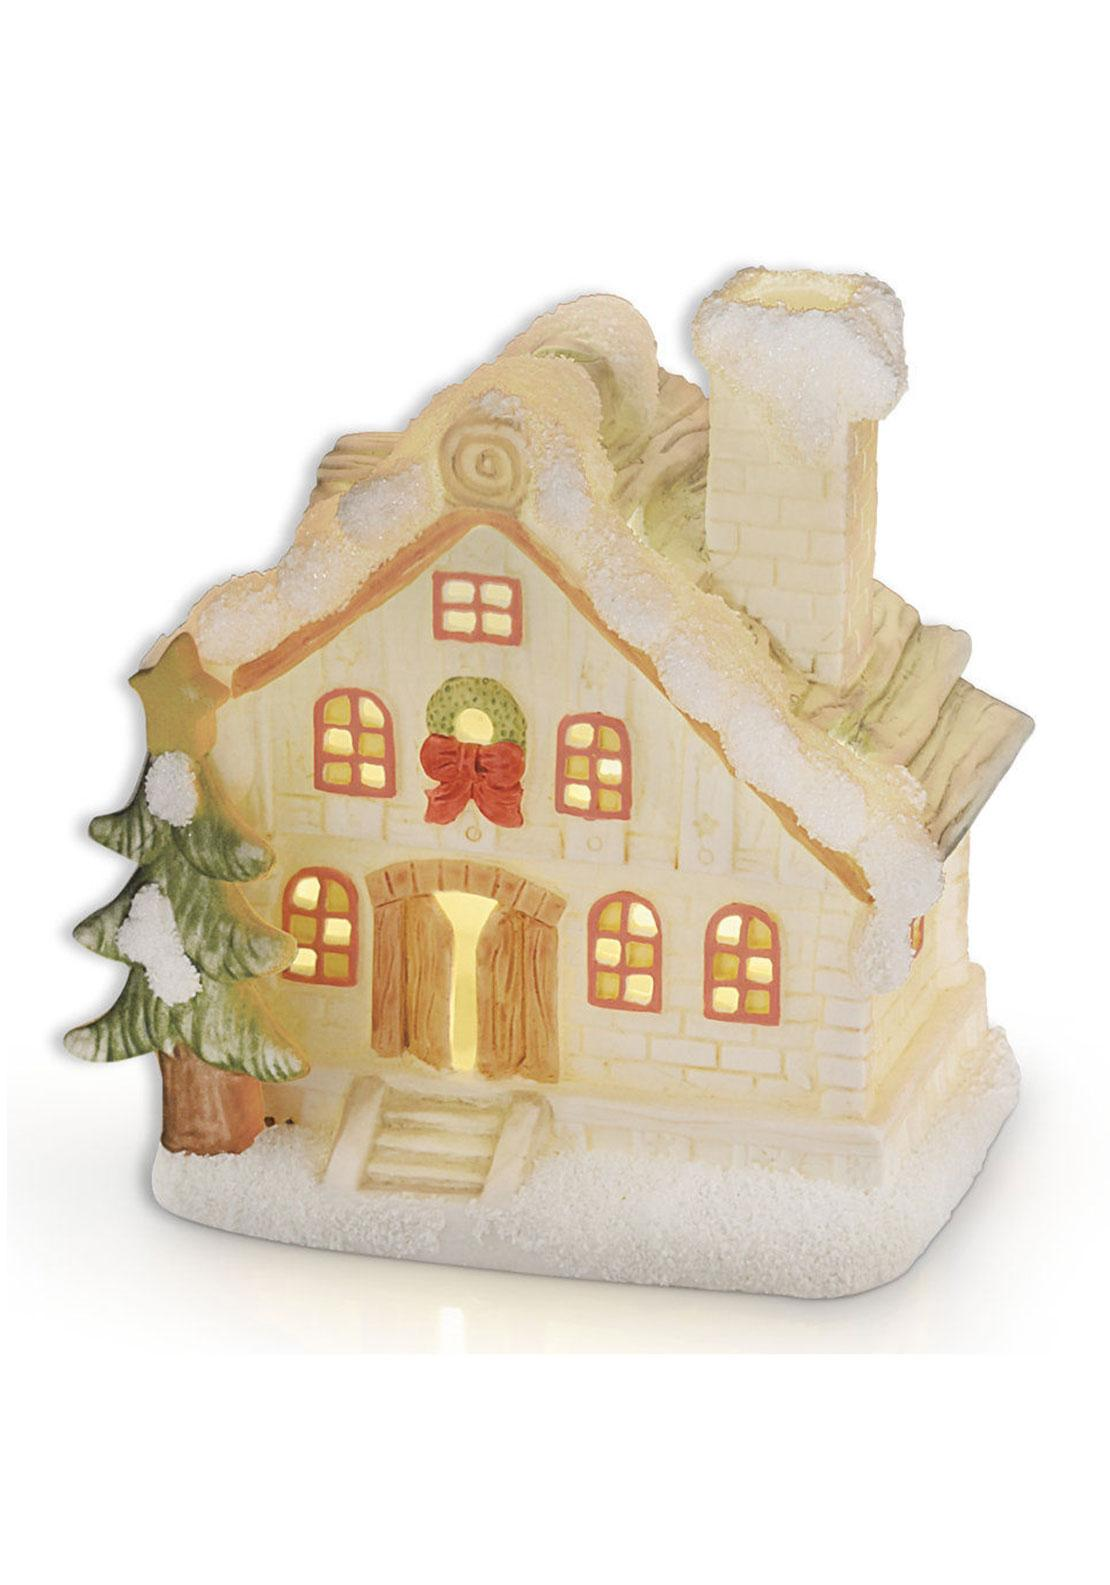 Newbridge Christmas House Ornament with Light